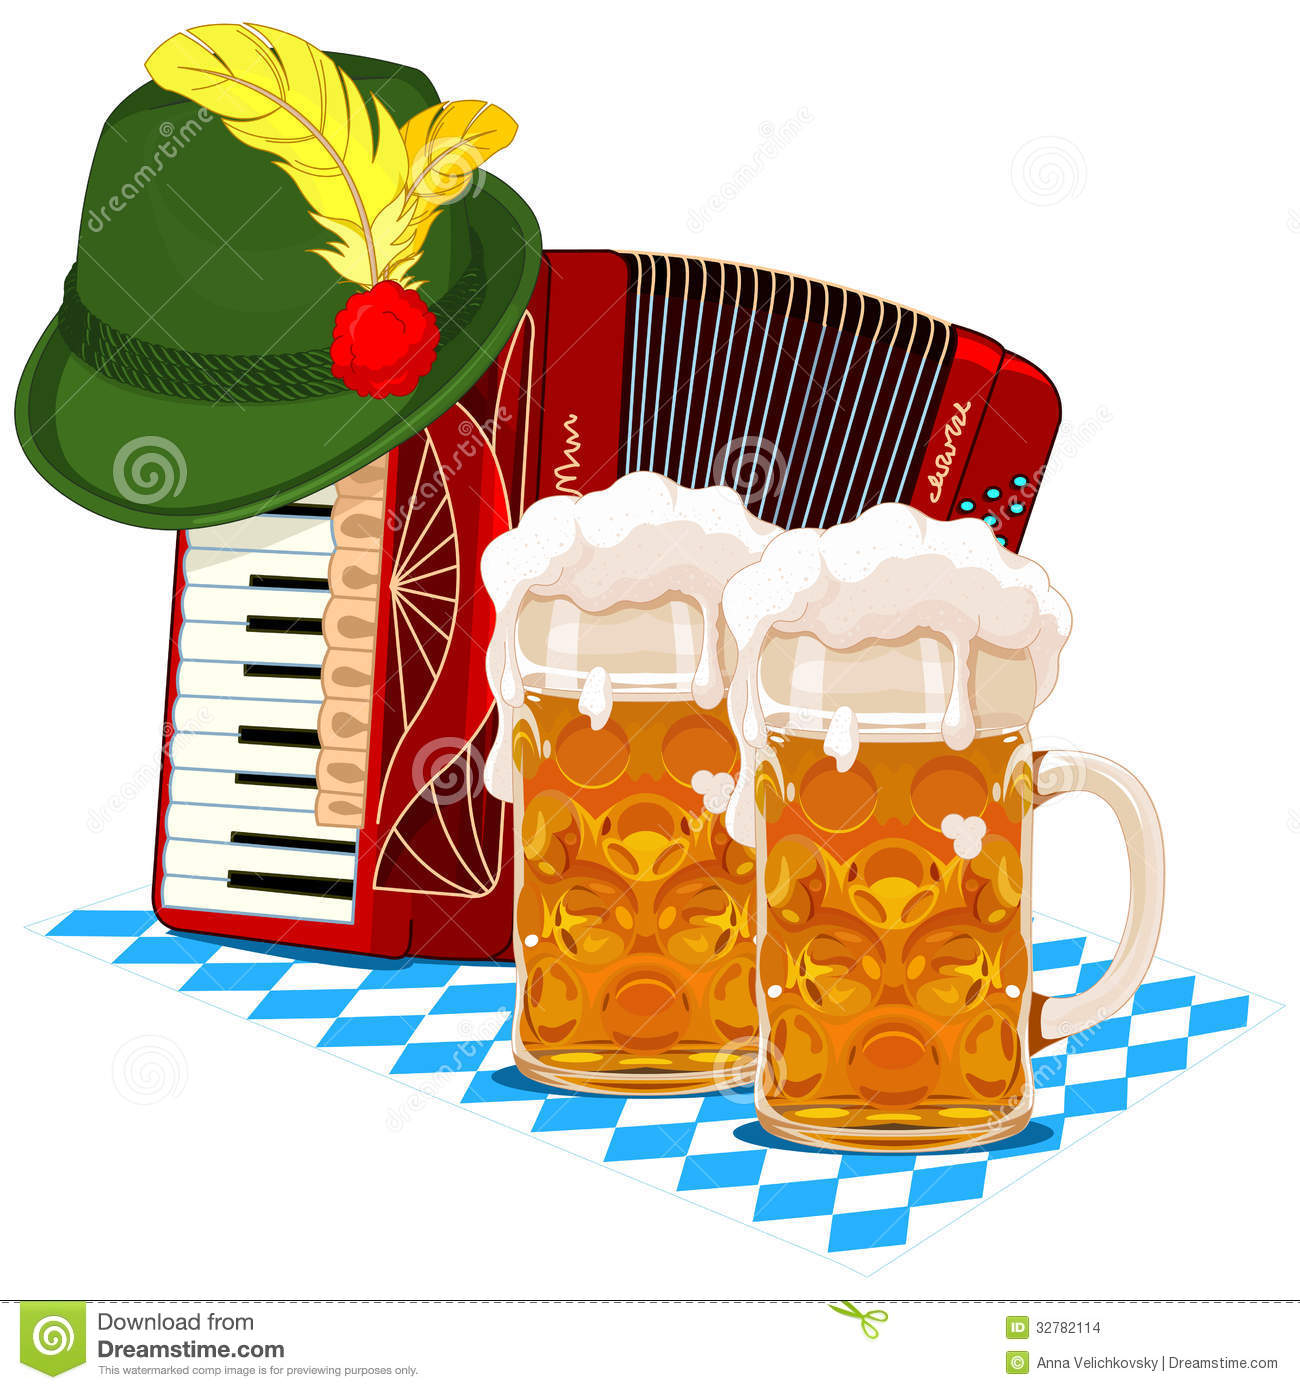 oktoberfest design stock vector illustration of clipart 32782114 rh dreamstime com oktoberfest clip art vector oktoberfest clip art free downloads